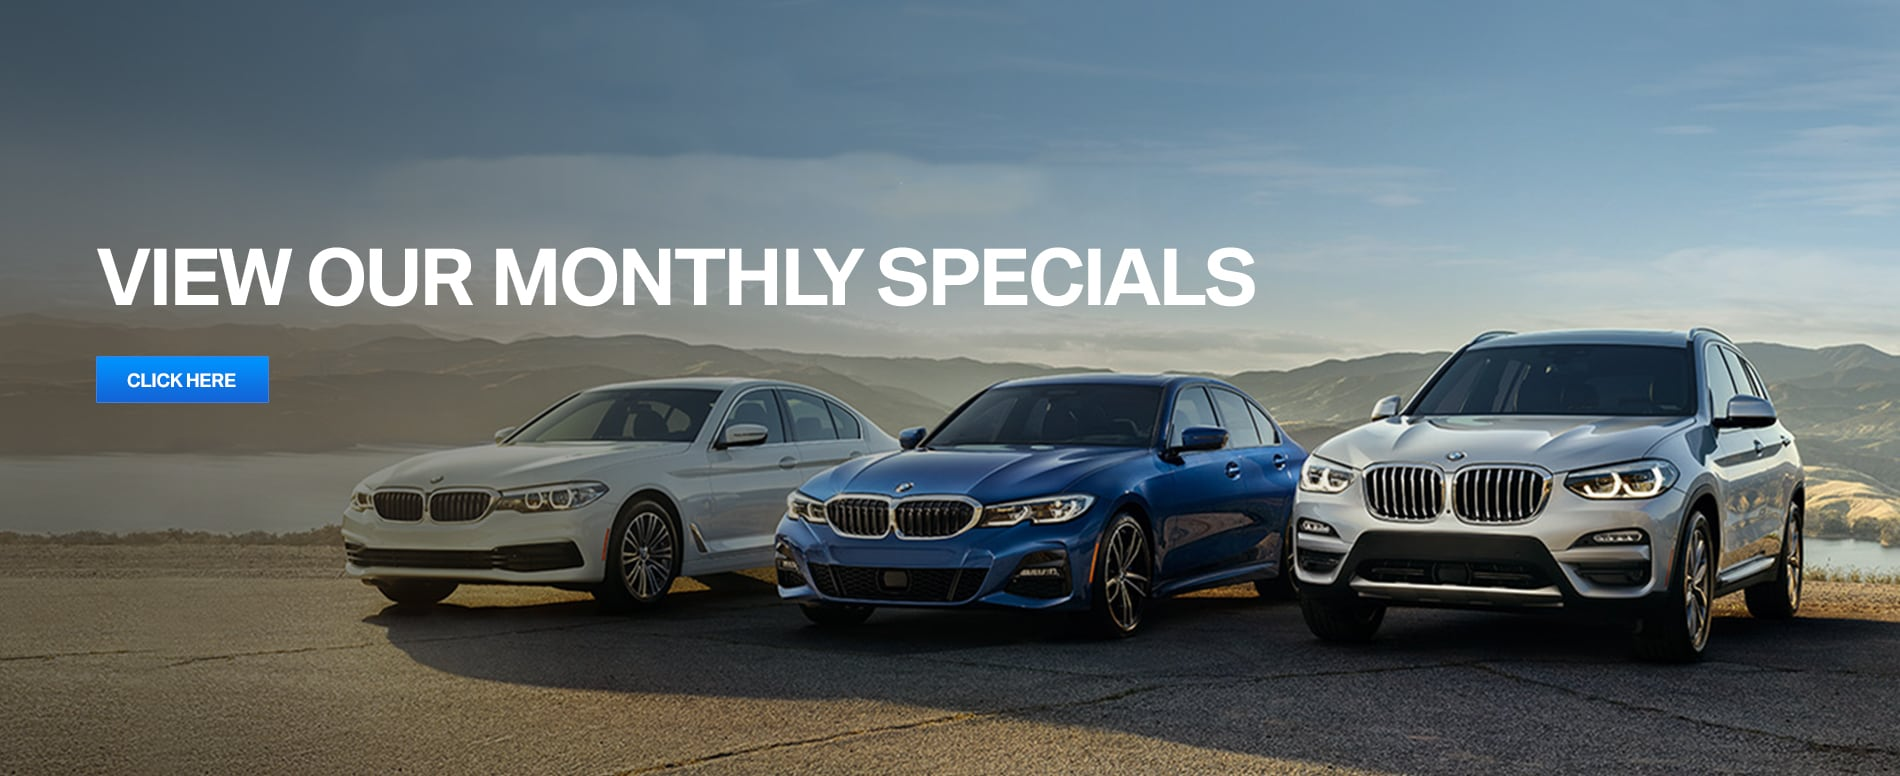 Bmw Dealer Near Me >> Bmw Of The Woodlands Bmw Dealership Near Me In The